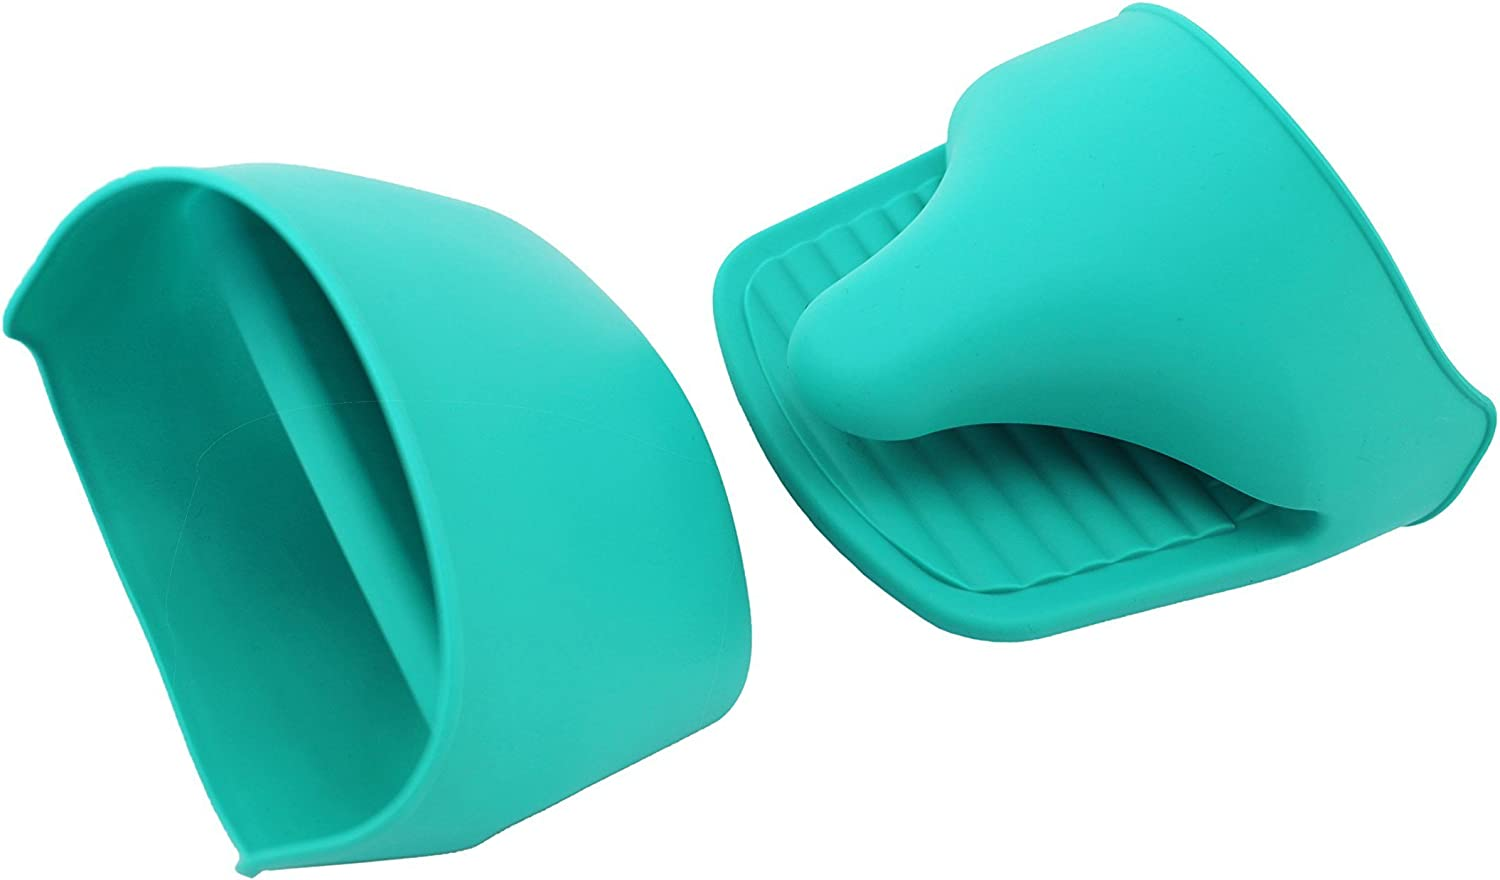 vinstar Silicone Mini Oven Mitts/Gripper, Blue, Set of 2